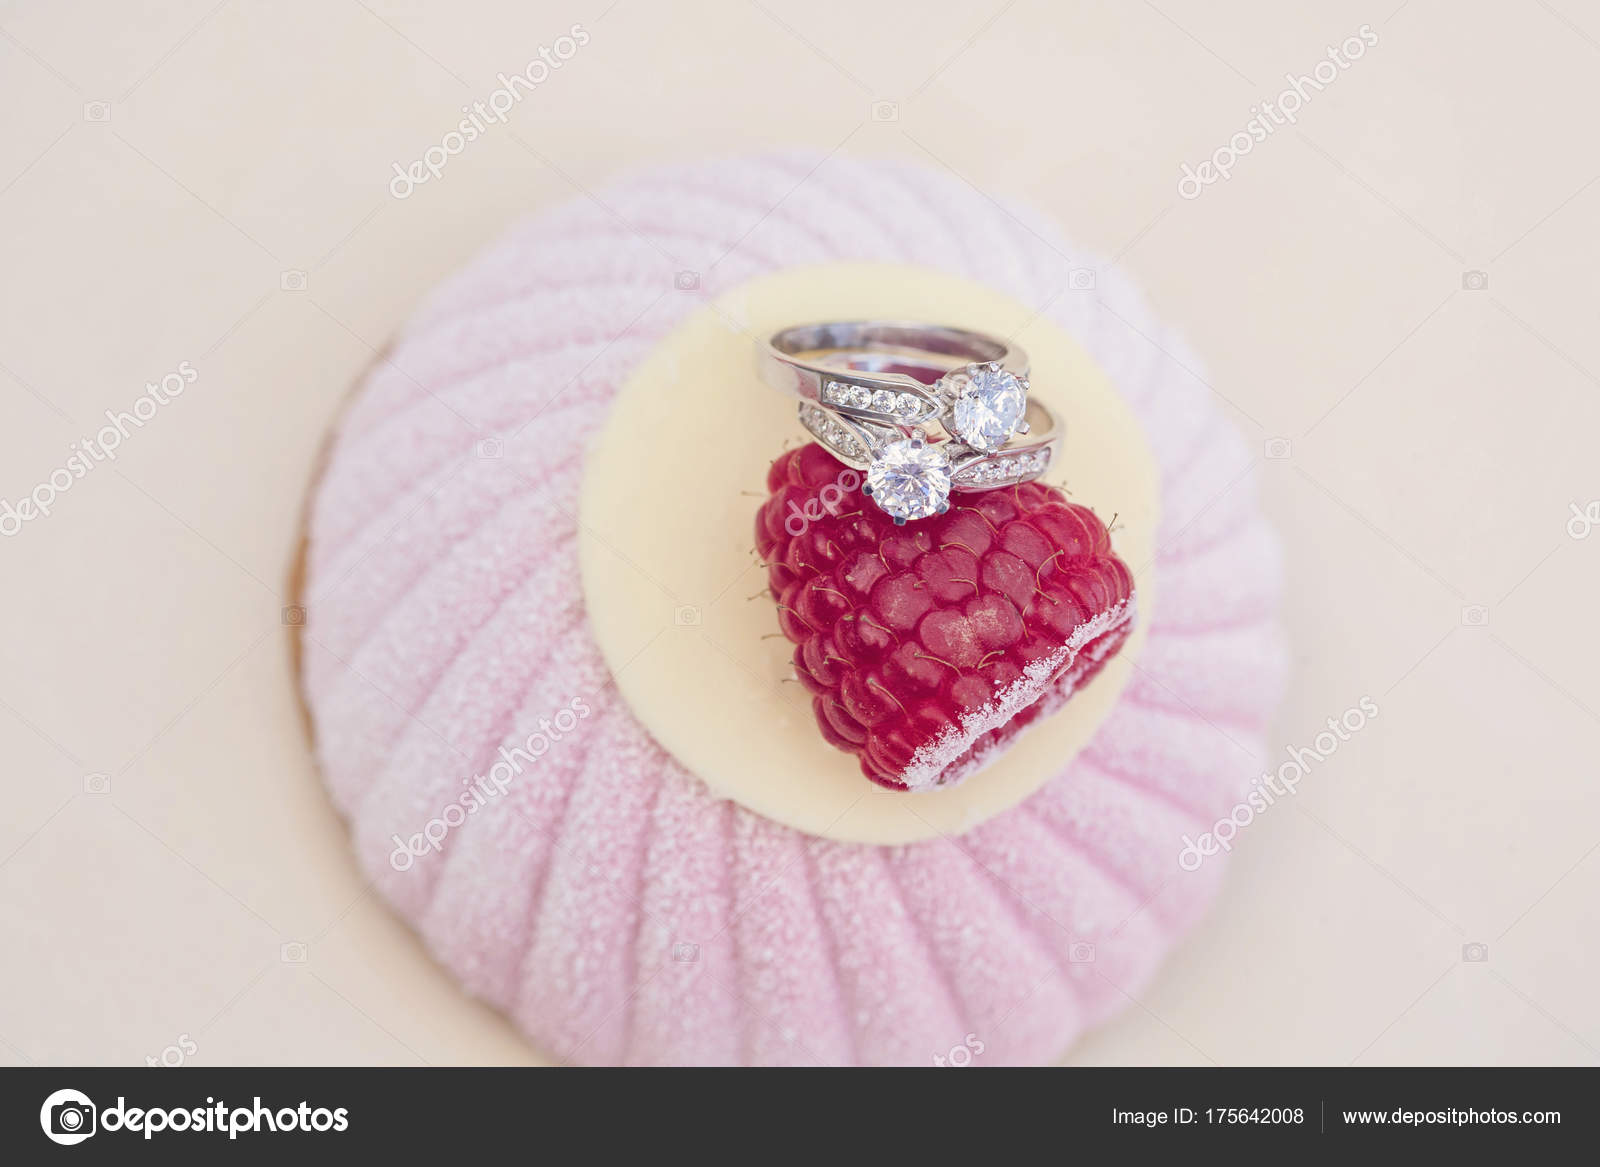 Engagement Set Rings Top Sweet Cake — Stock Photo © zoomarket #175642008